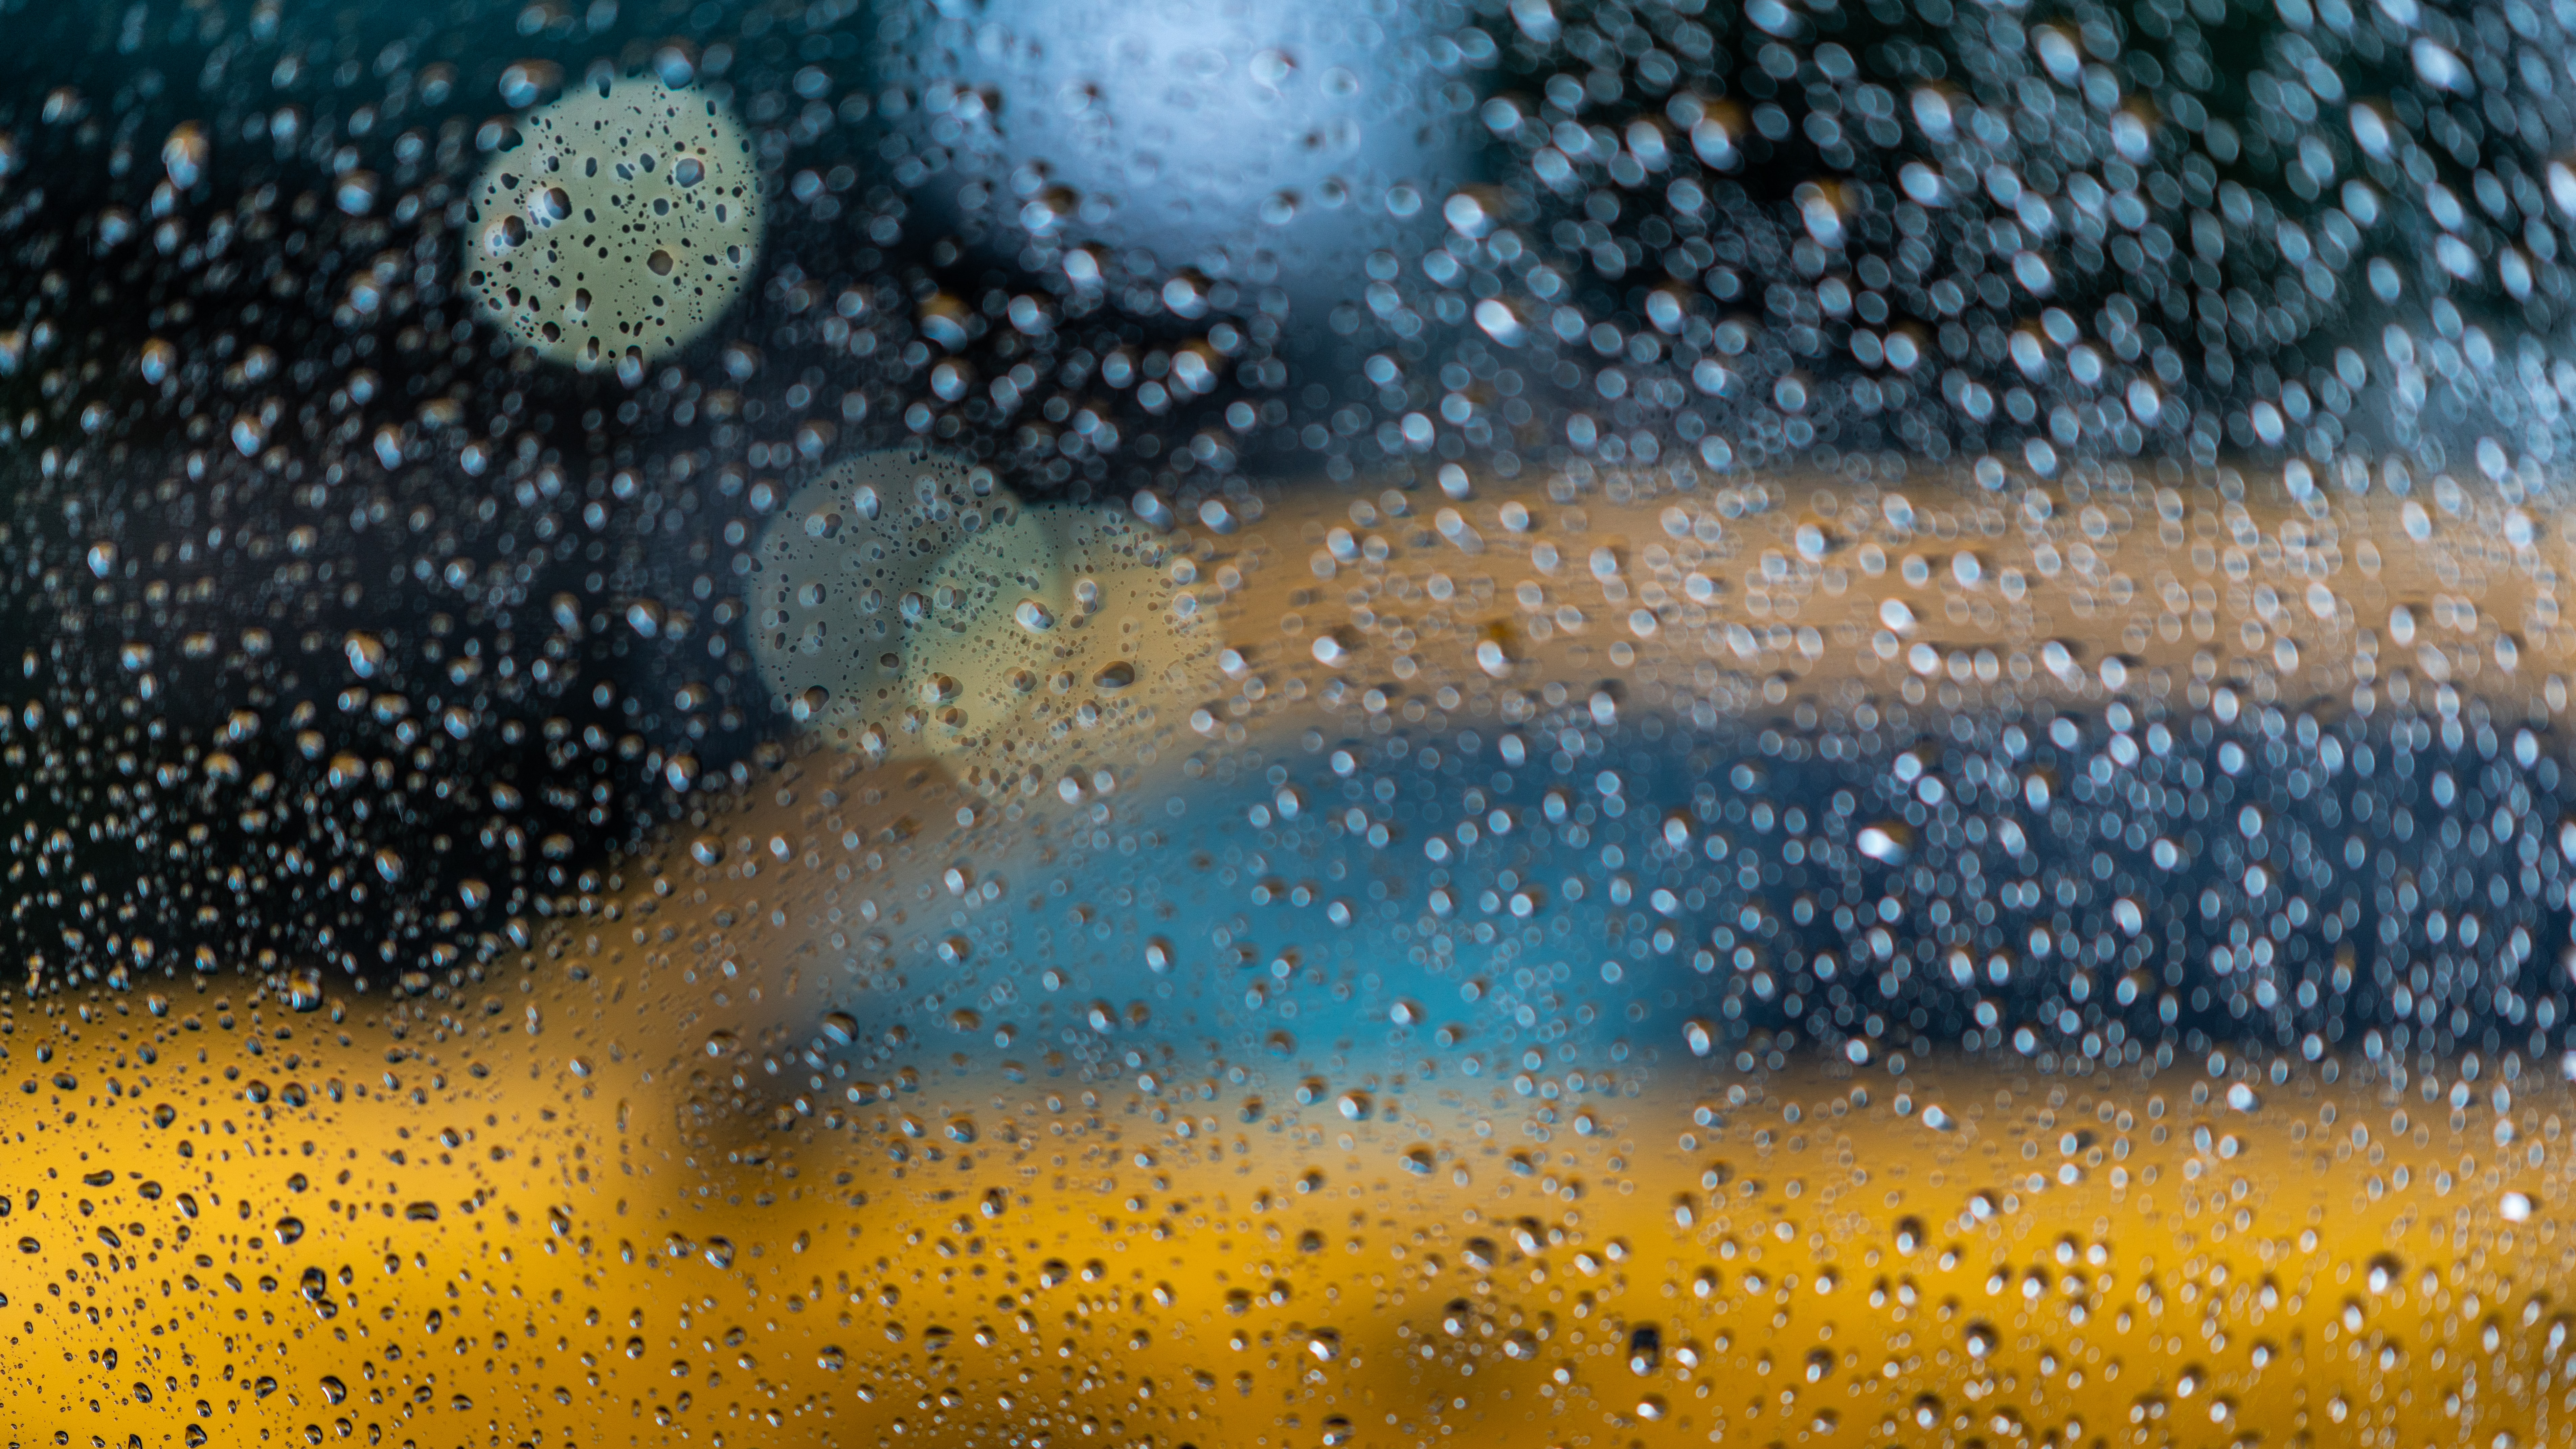 bokeh photography of glass window with water dew